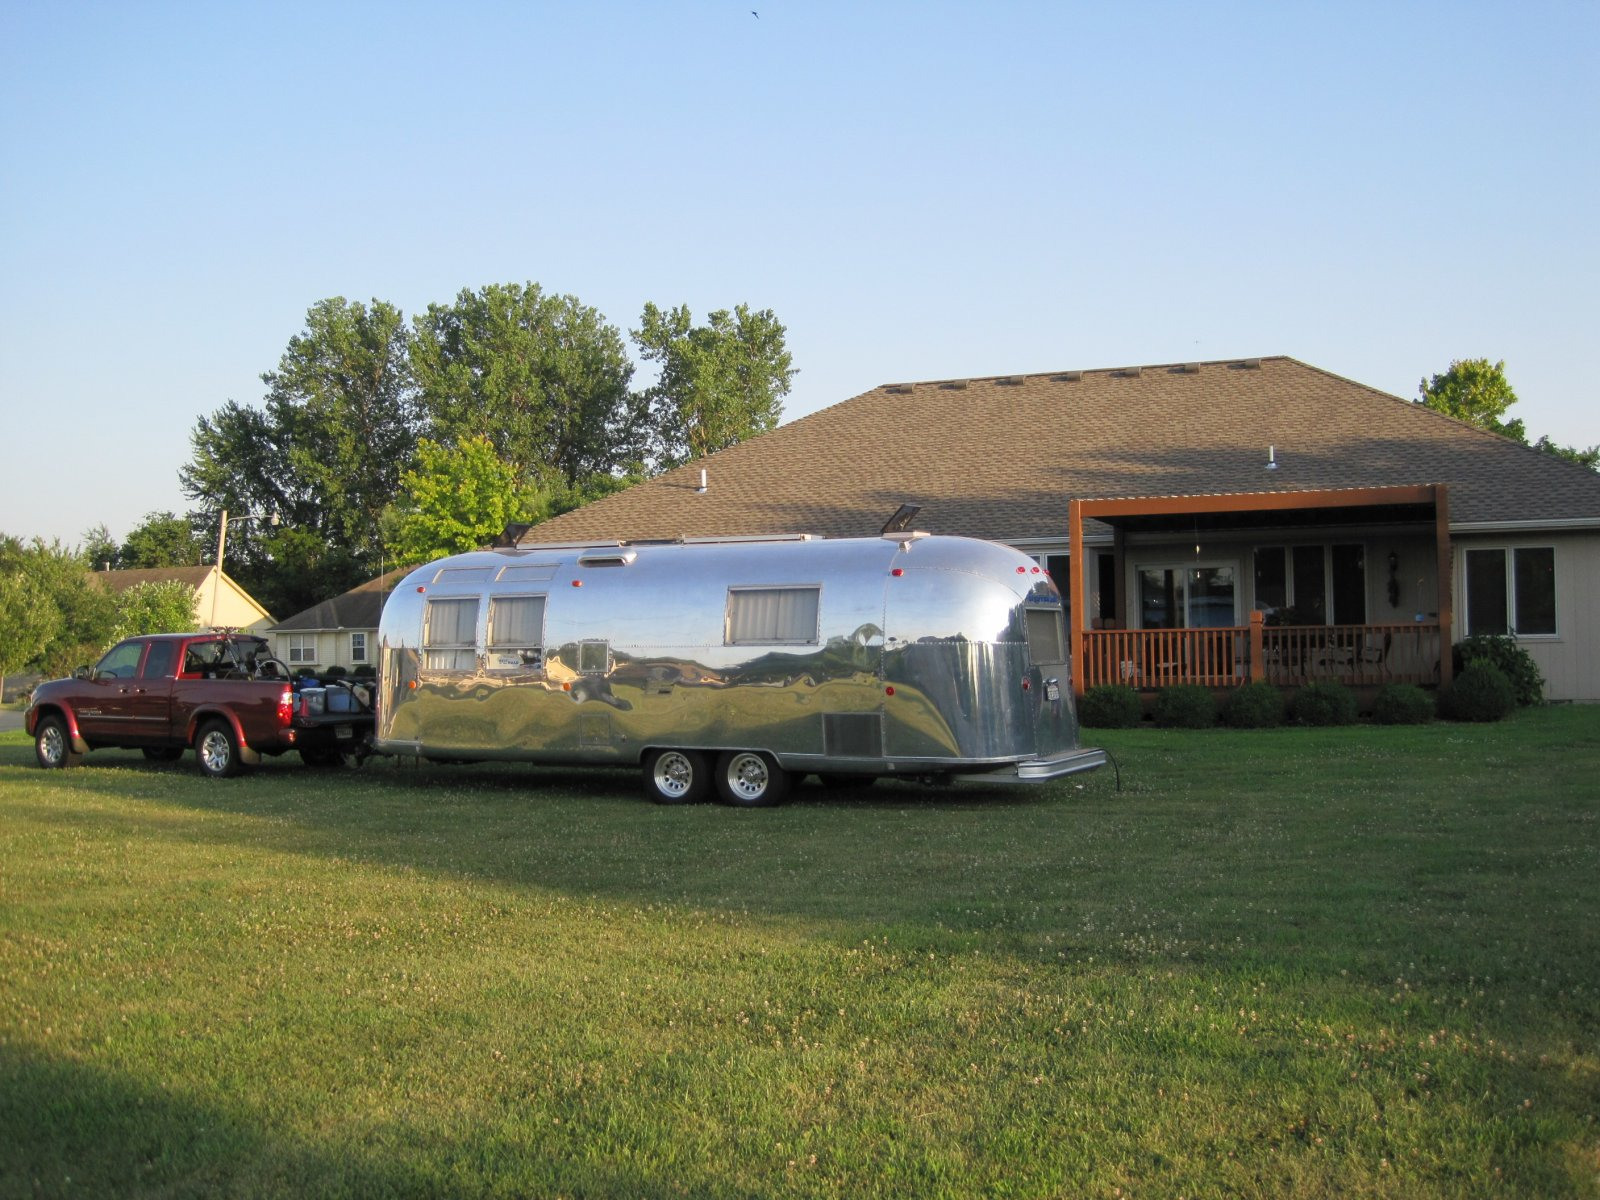 Click image for larger version  Name:July 21, 2011 Oak Grove 003.jpg Views:98 Size:357.6 KB ID:135558